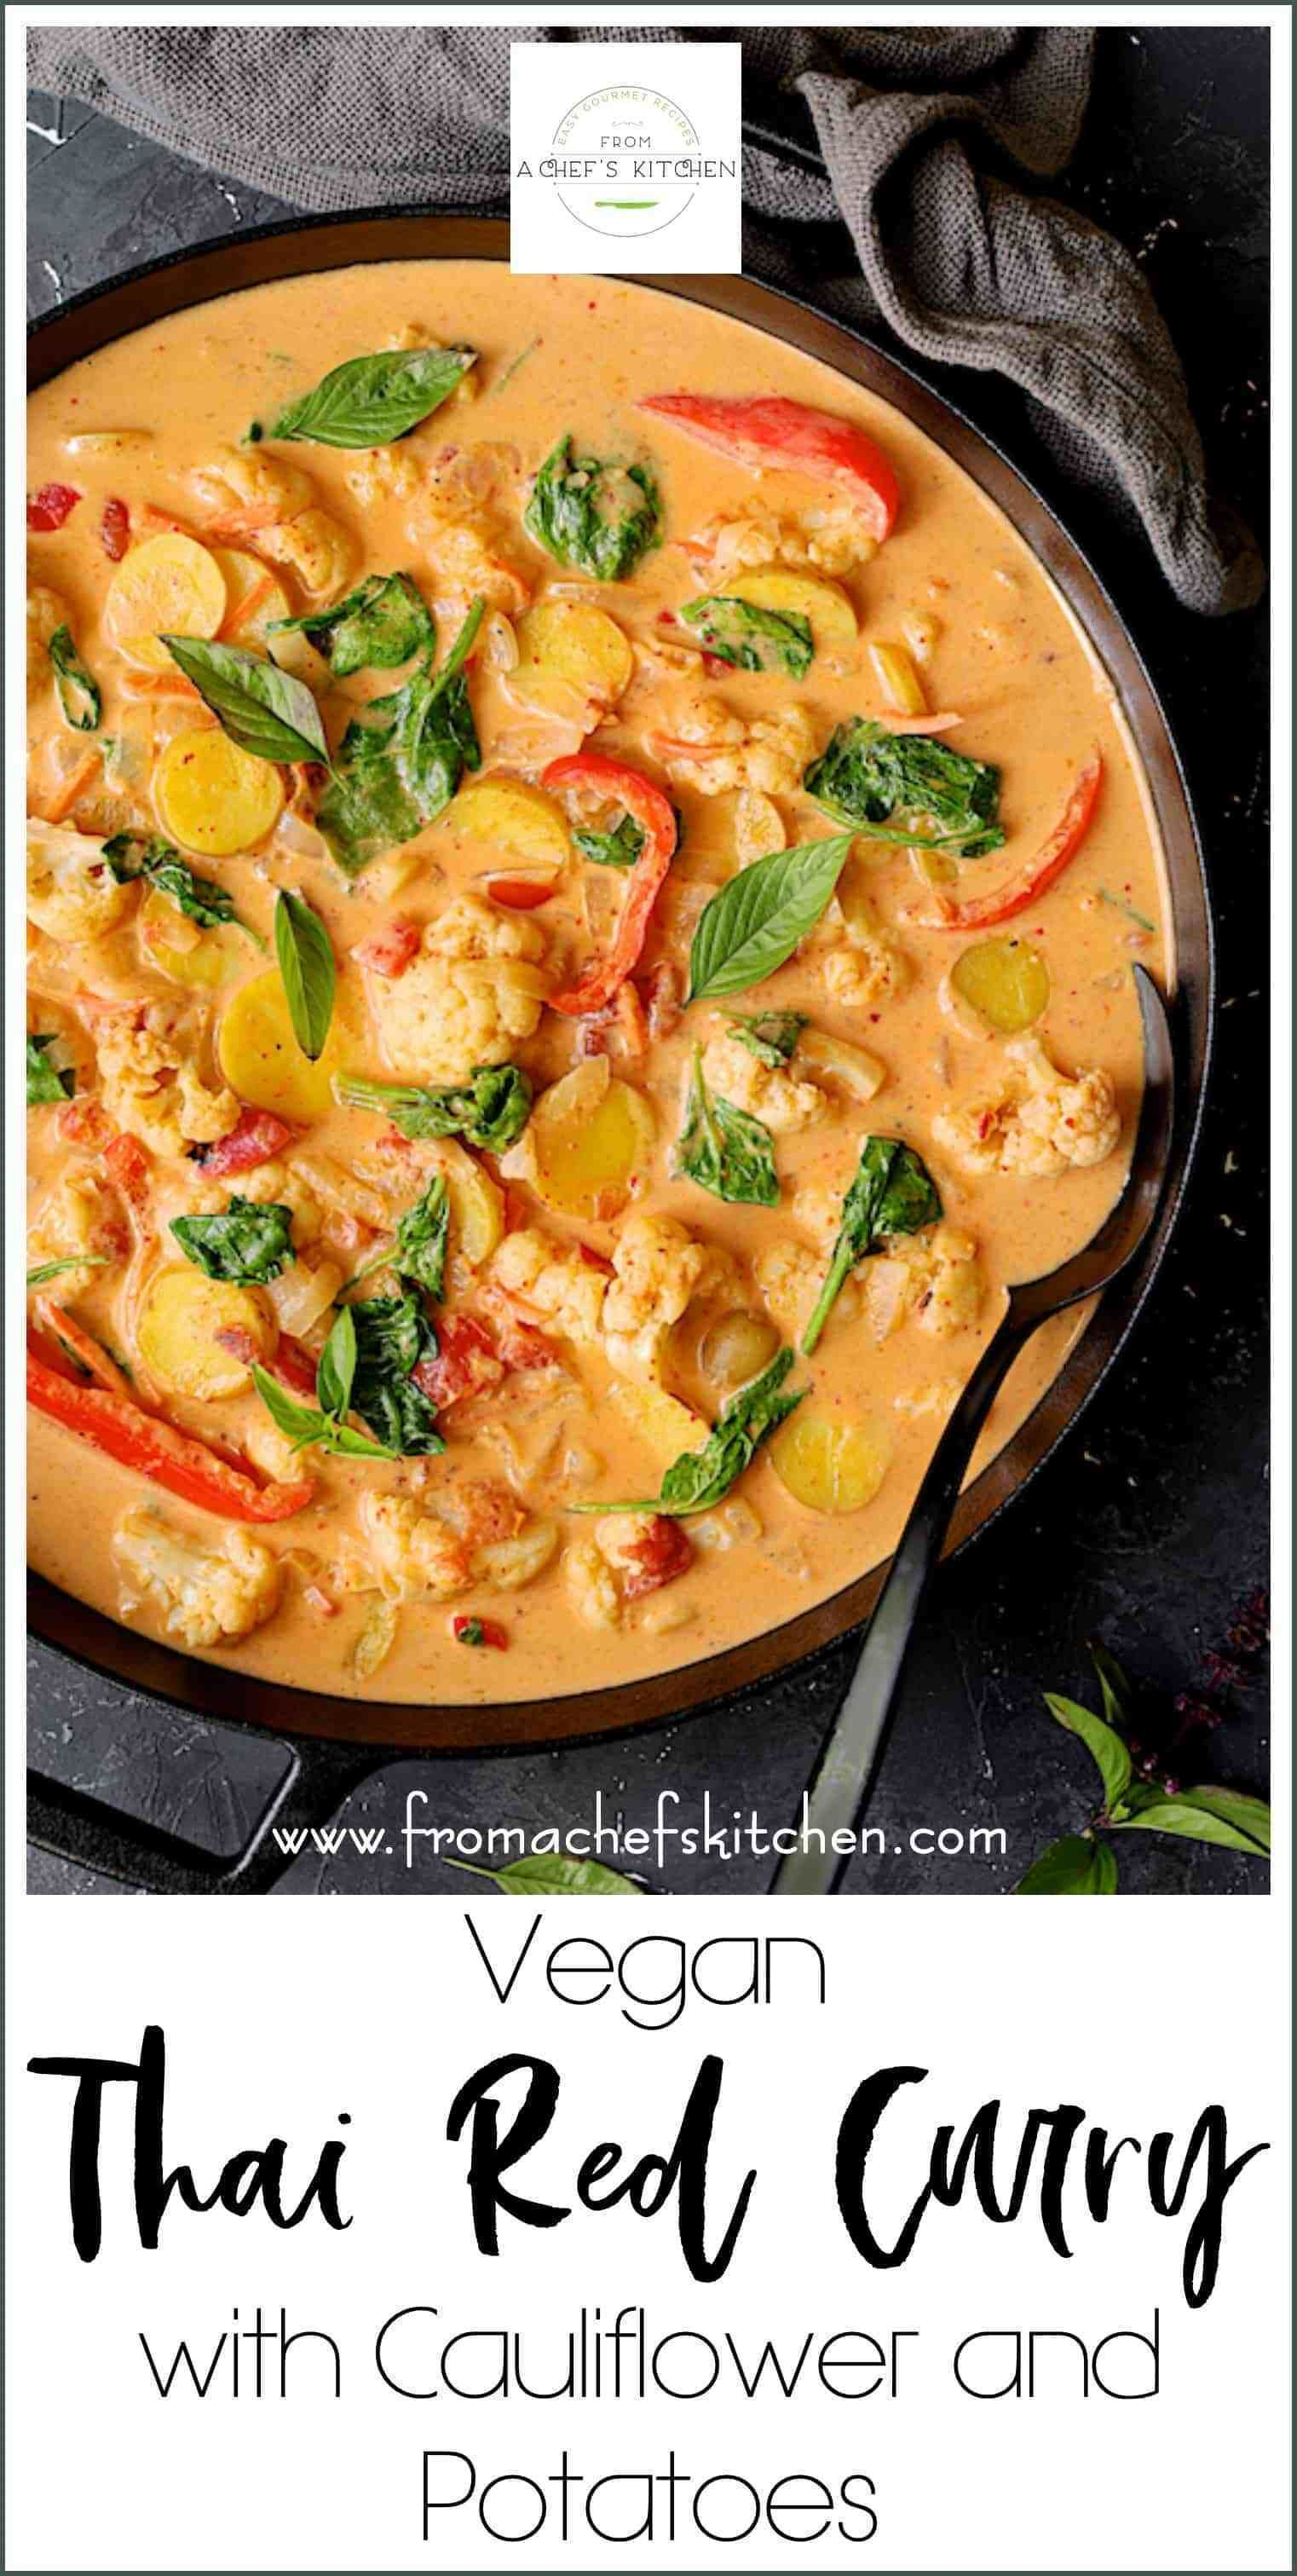 Vegan Thai Red Curry with Cauliflower and Potatoes is spicy and delicious with a side of healthy! It's the perfect veggie-packed meal to warm you up on a chilly fall night you won't feel guilty about!